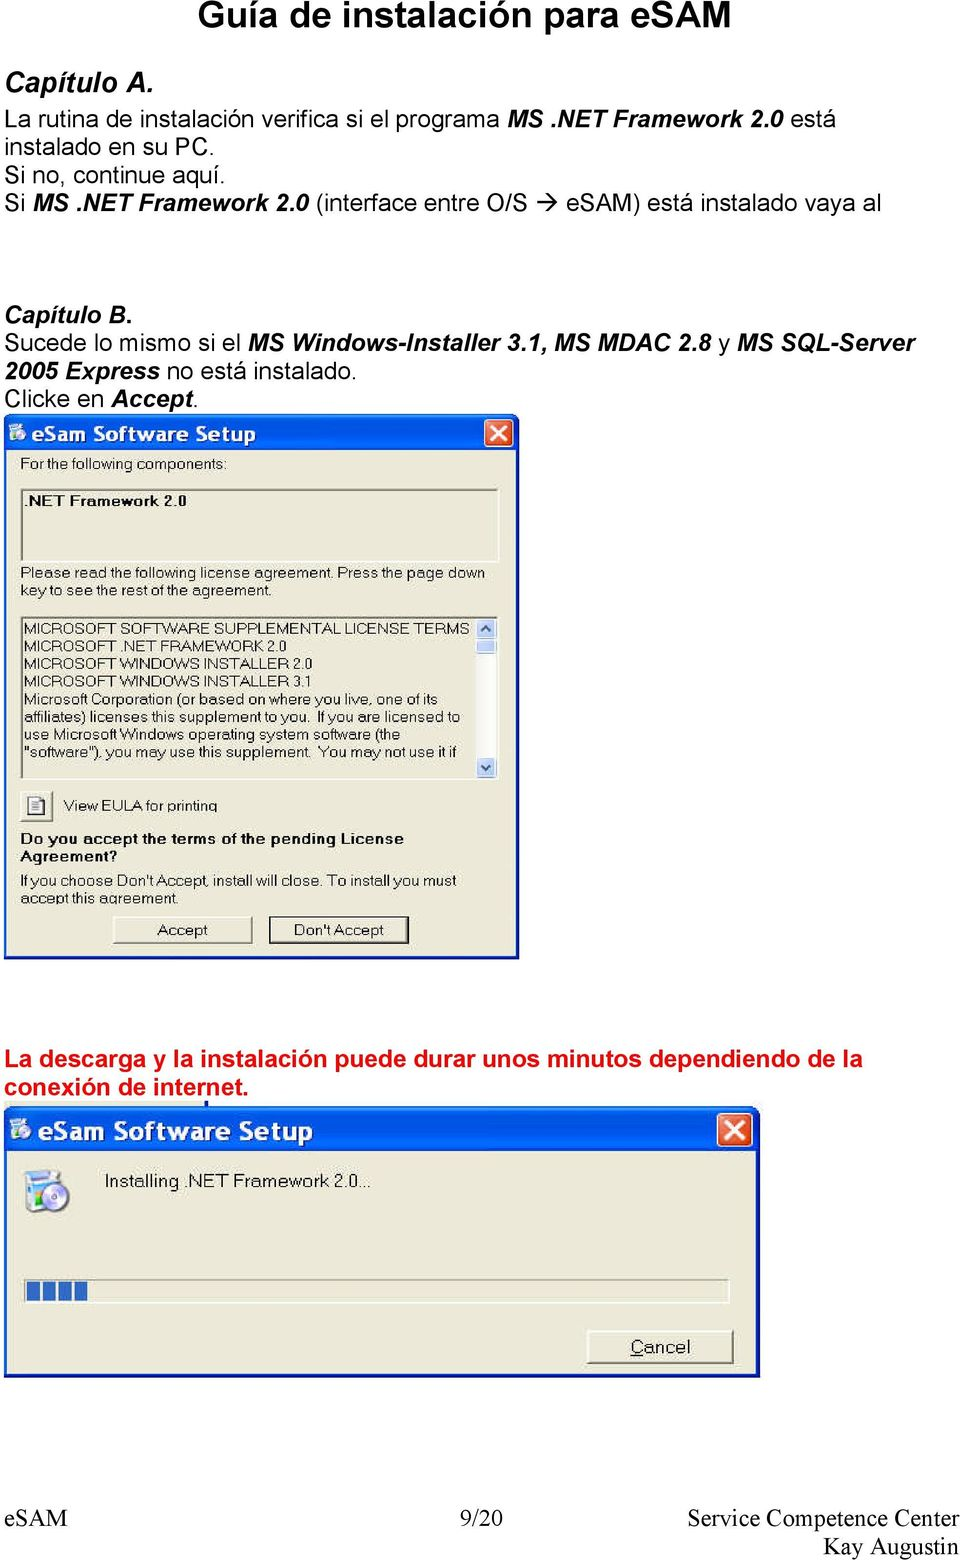 Sucede lo mismo si el MS Windows-Installer 3.1, MS MDAC 2.8 y MS SQL-Server 2005 Express no está instalado.